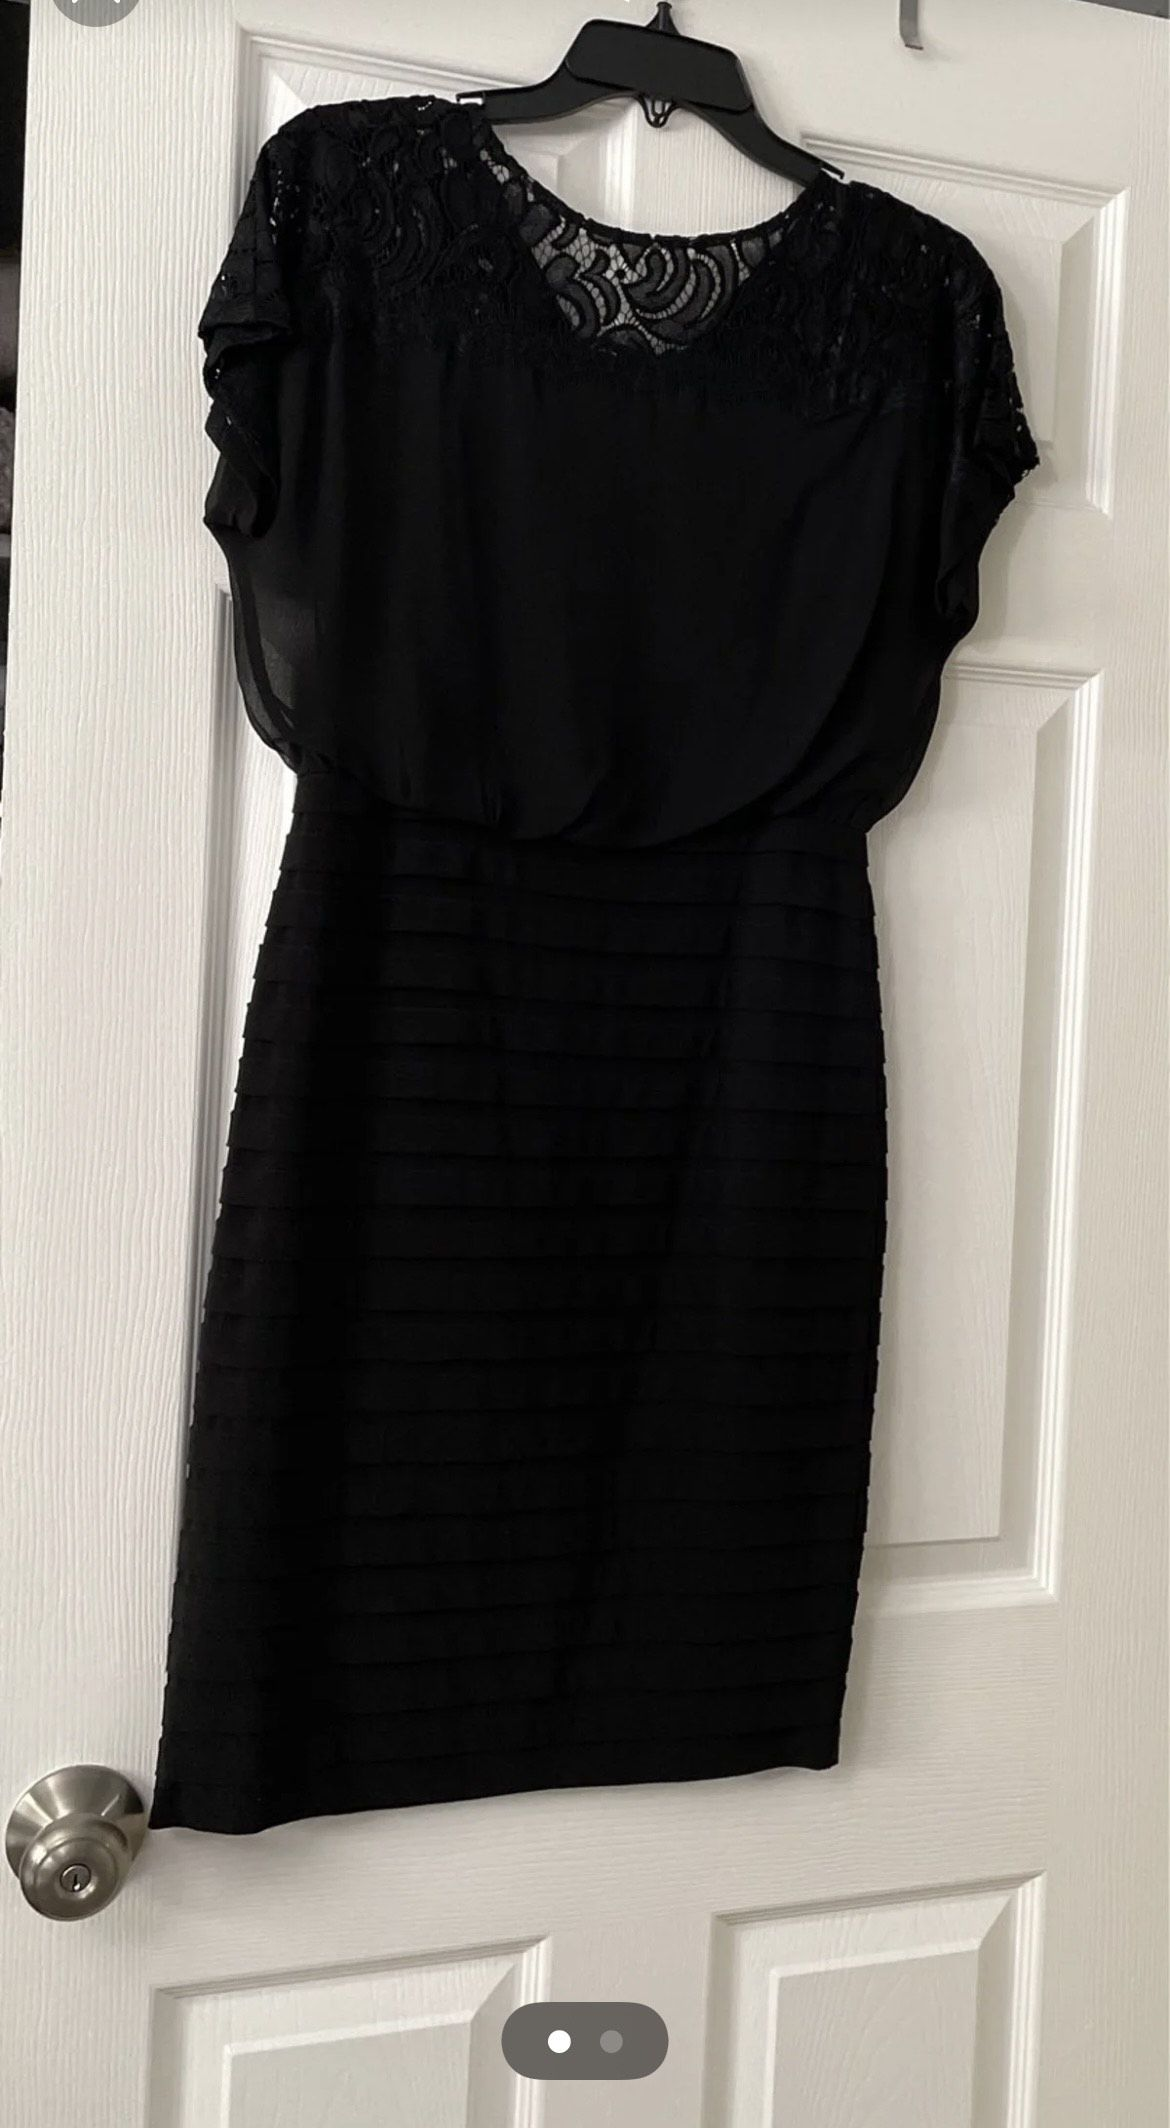 Adrianna papell Black Size 4 Mini Lace Mermaid Dress on Queenly